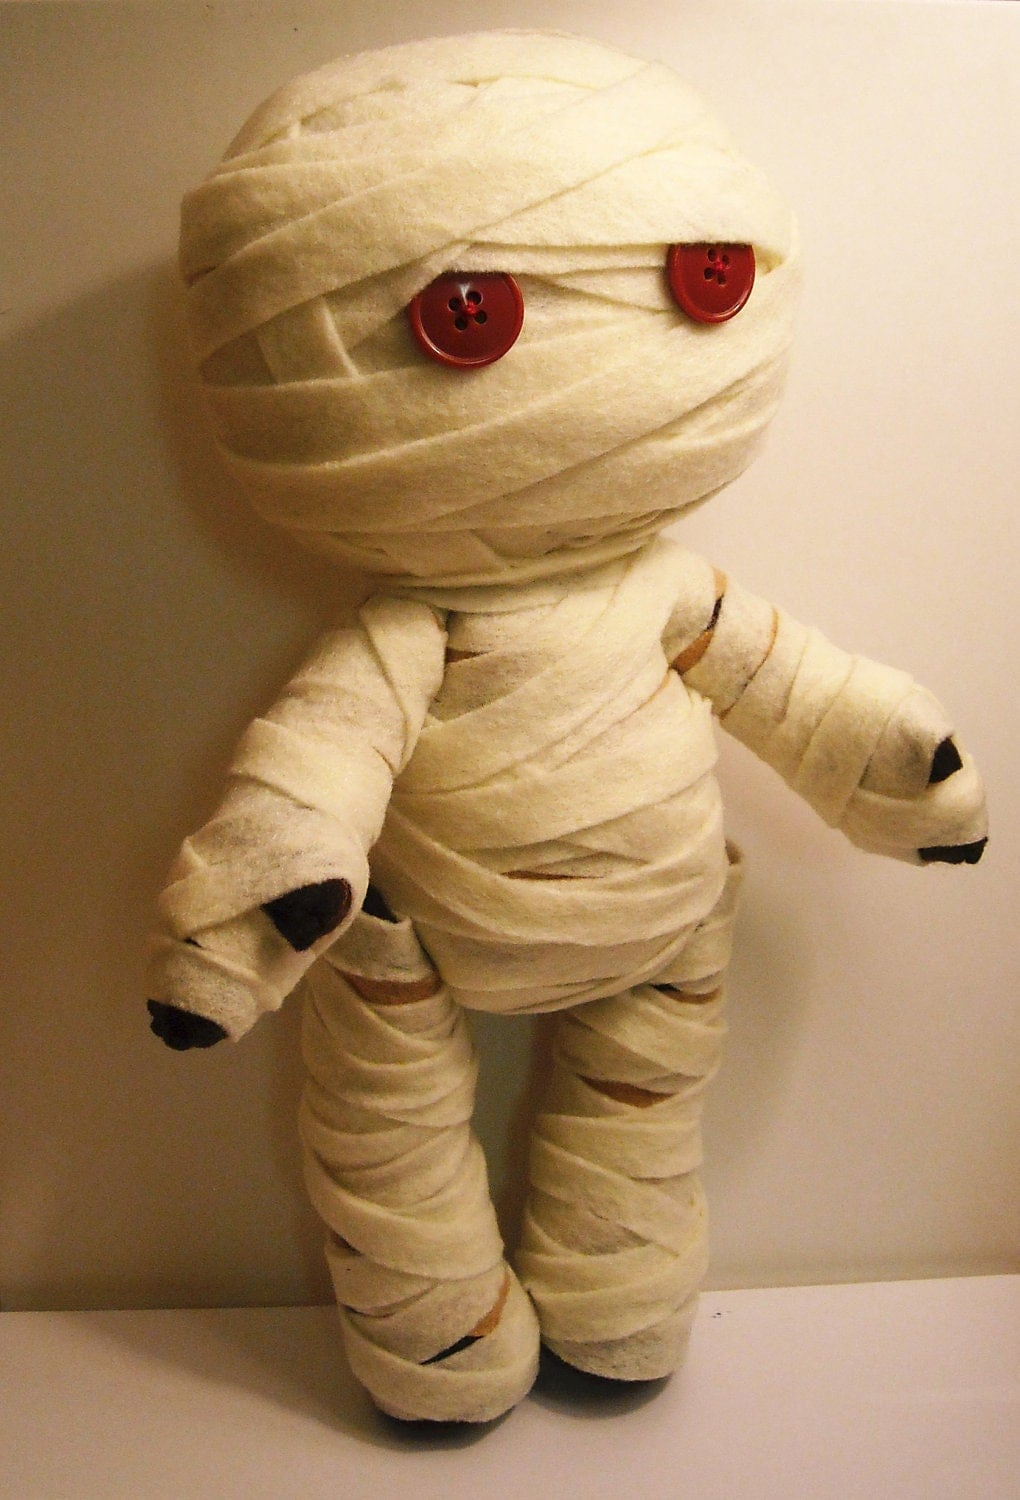 Toys For Halloween : Felt mummy halloween inspired custom plush stuffed rag doll